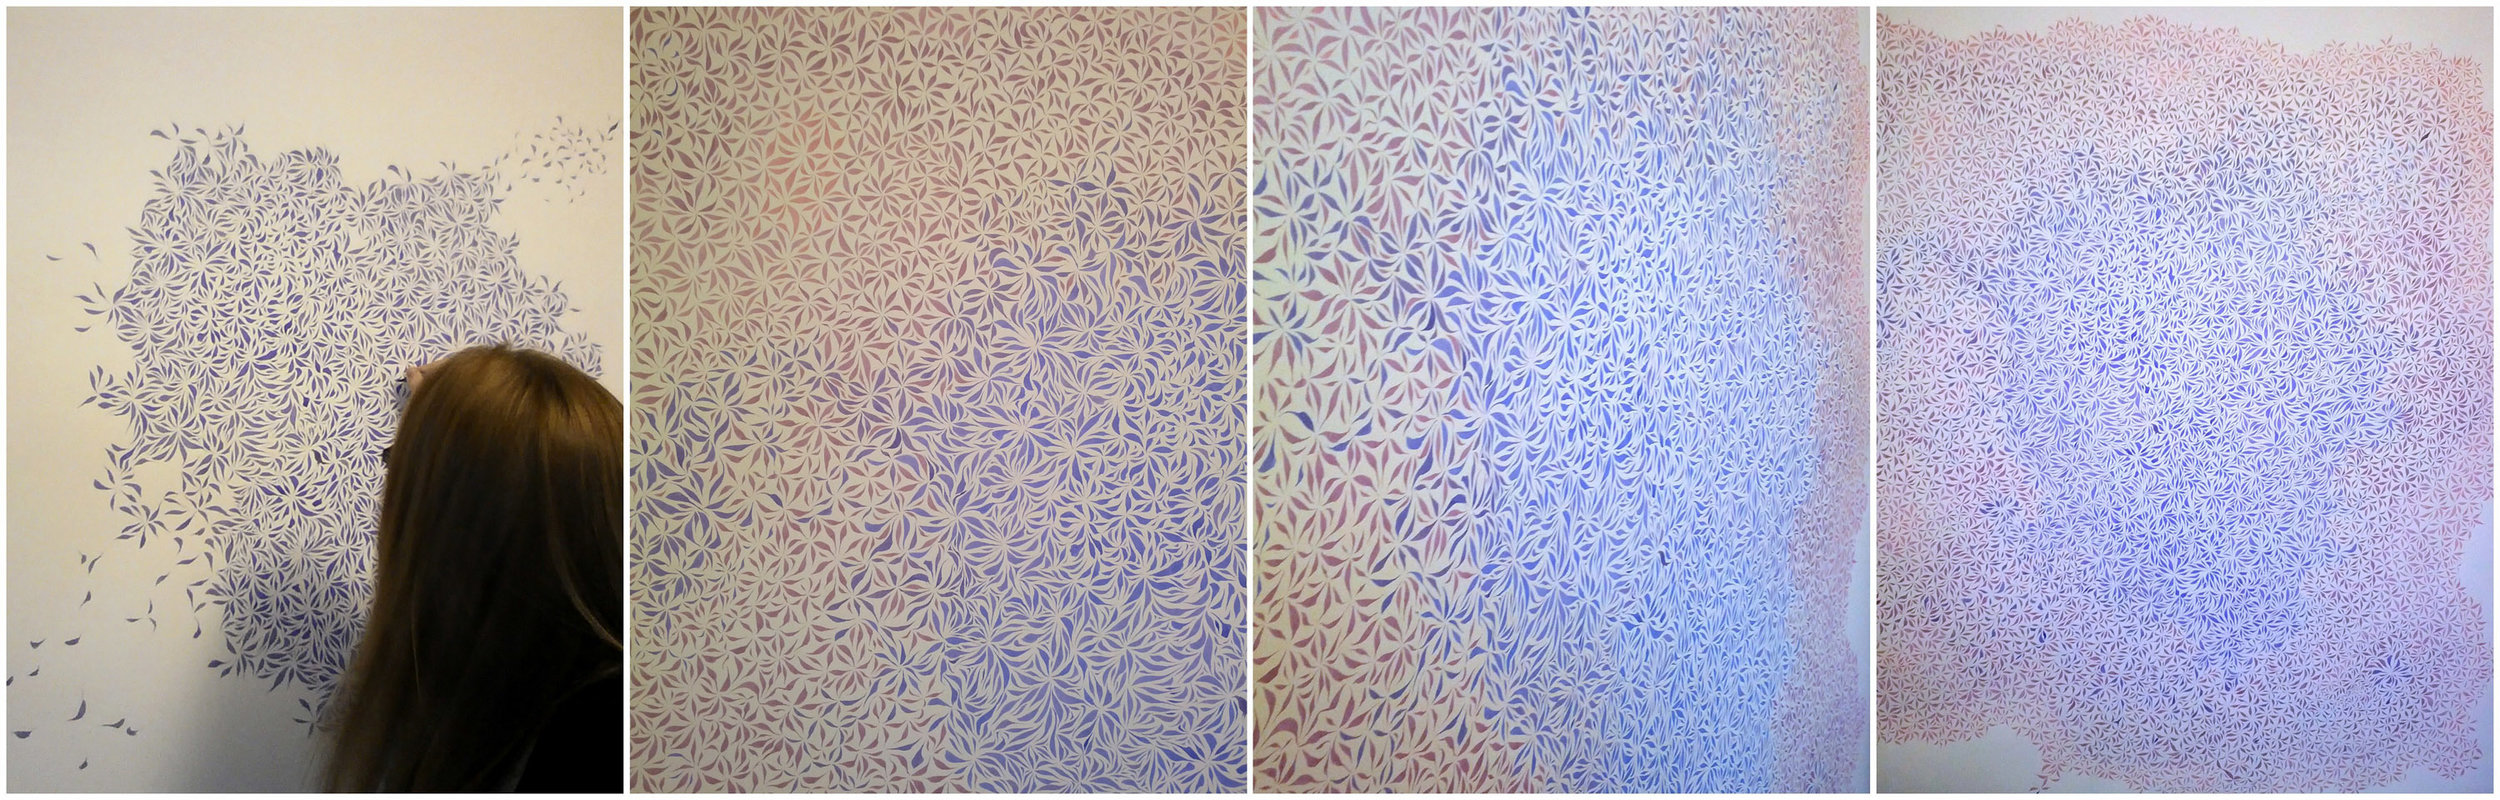 Image description; a four panel image showing me drawing a giant ink pattern made out cell-like brush marks in mixtures of blue and pink ink